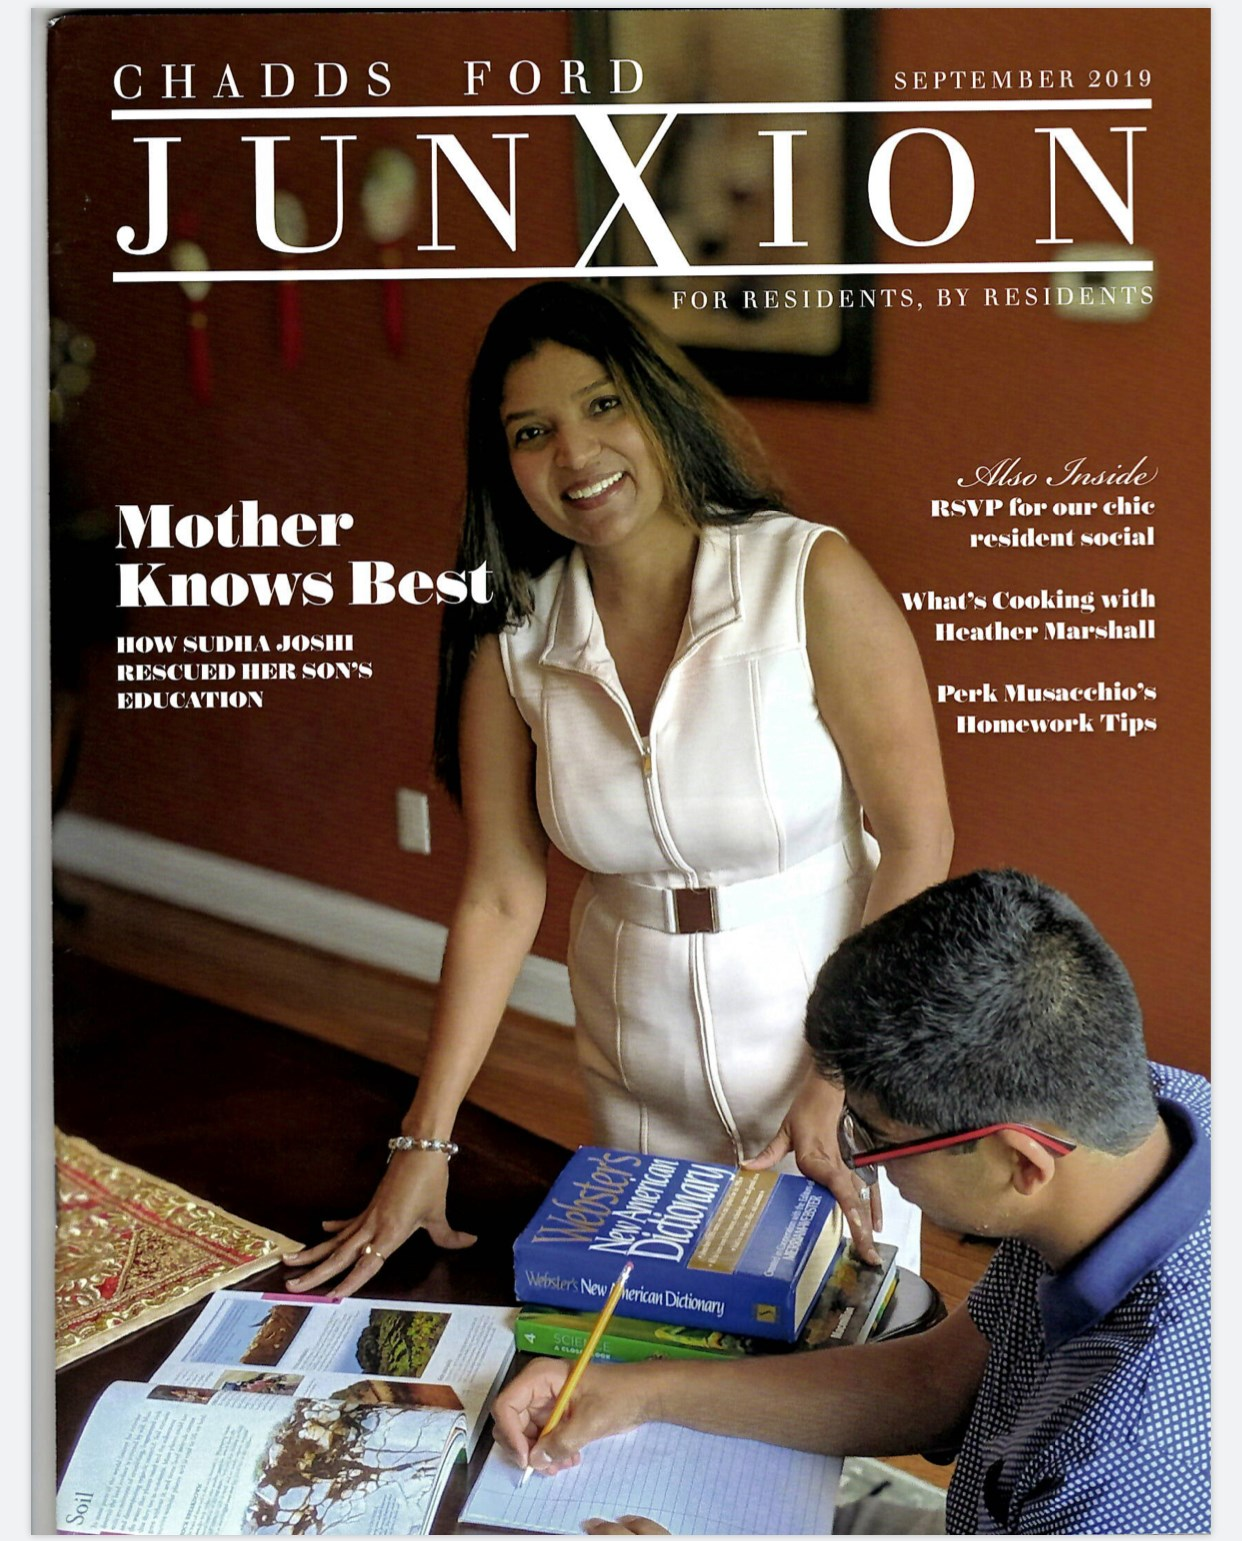 Chadds Ford Junxion Cover Page